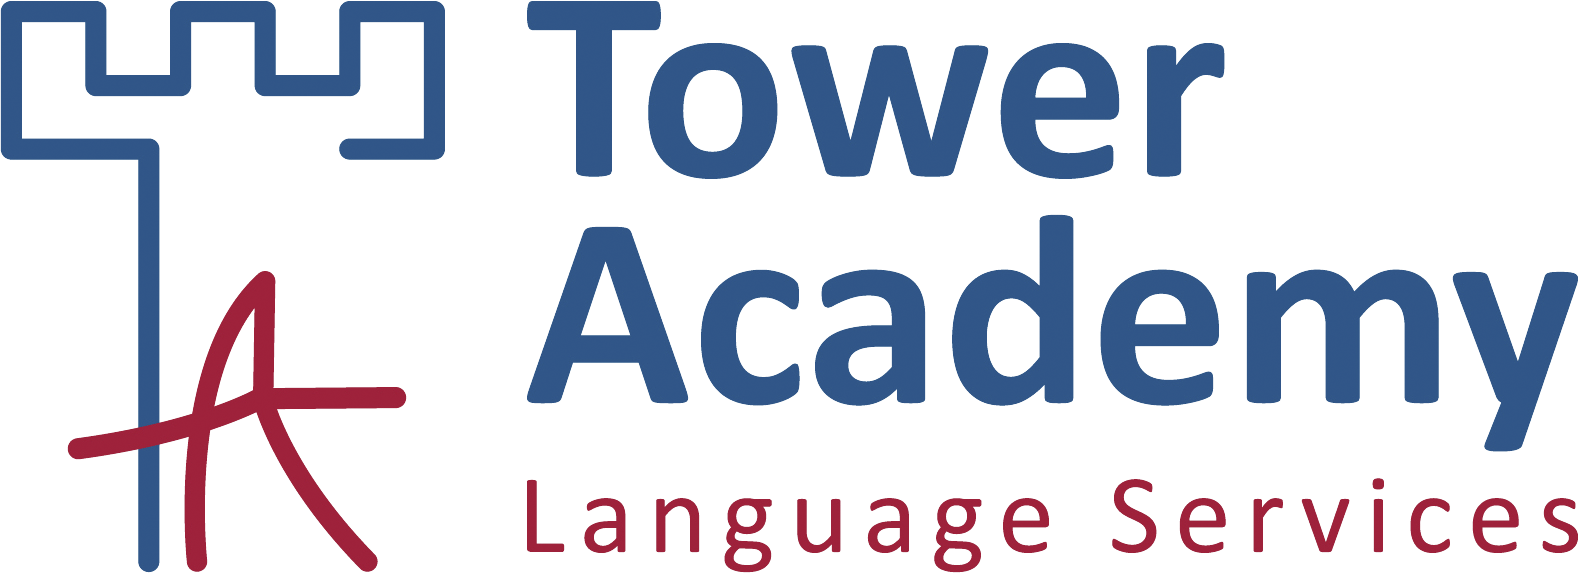 Tower Academy